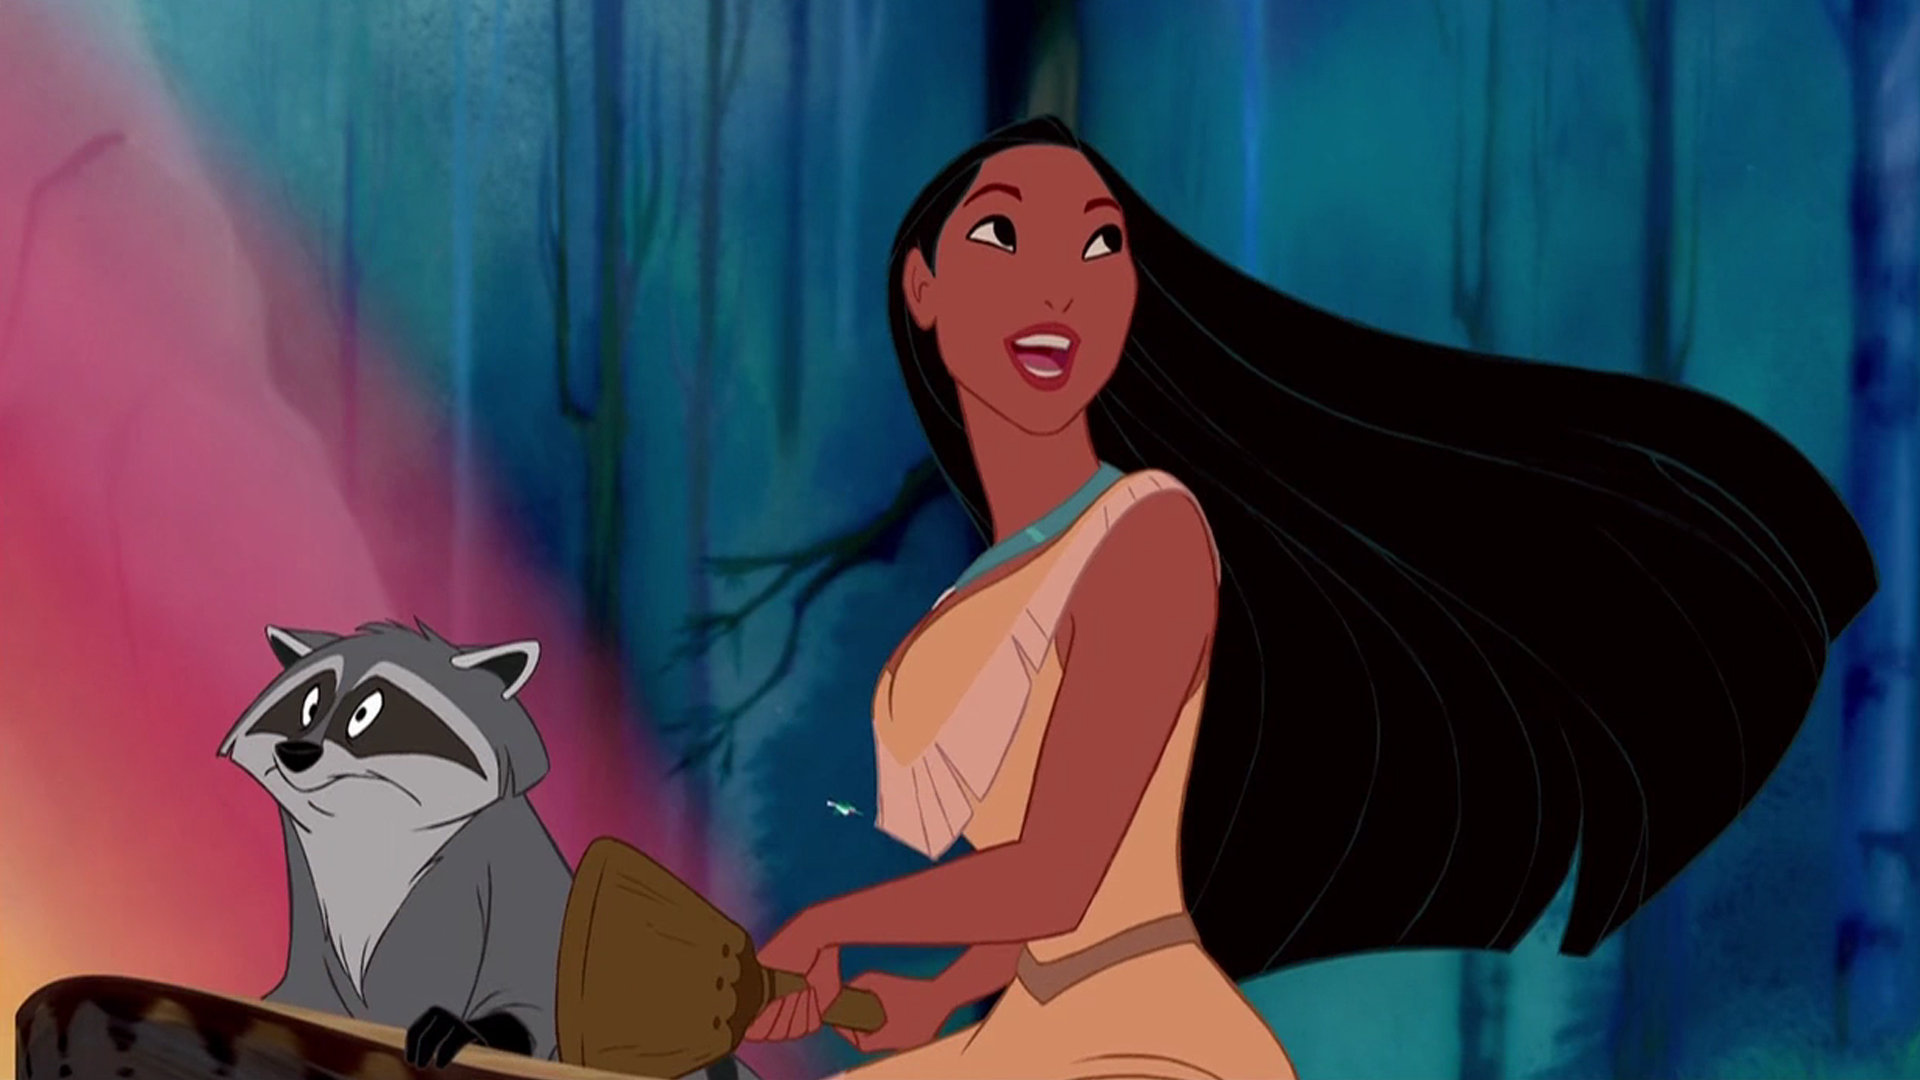 John Smith and Pocahontas Story http://manishamishra.wordpress.com/2011/10/27/animated-films-that-forgot-to-do-their-history-homework/